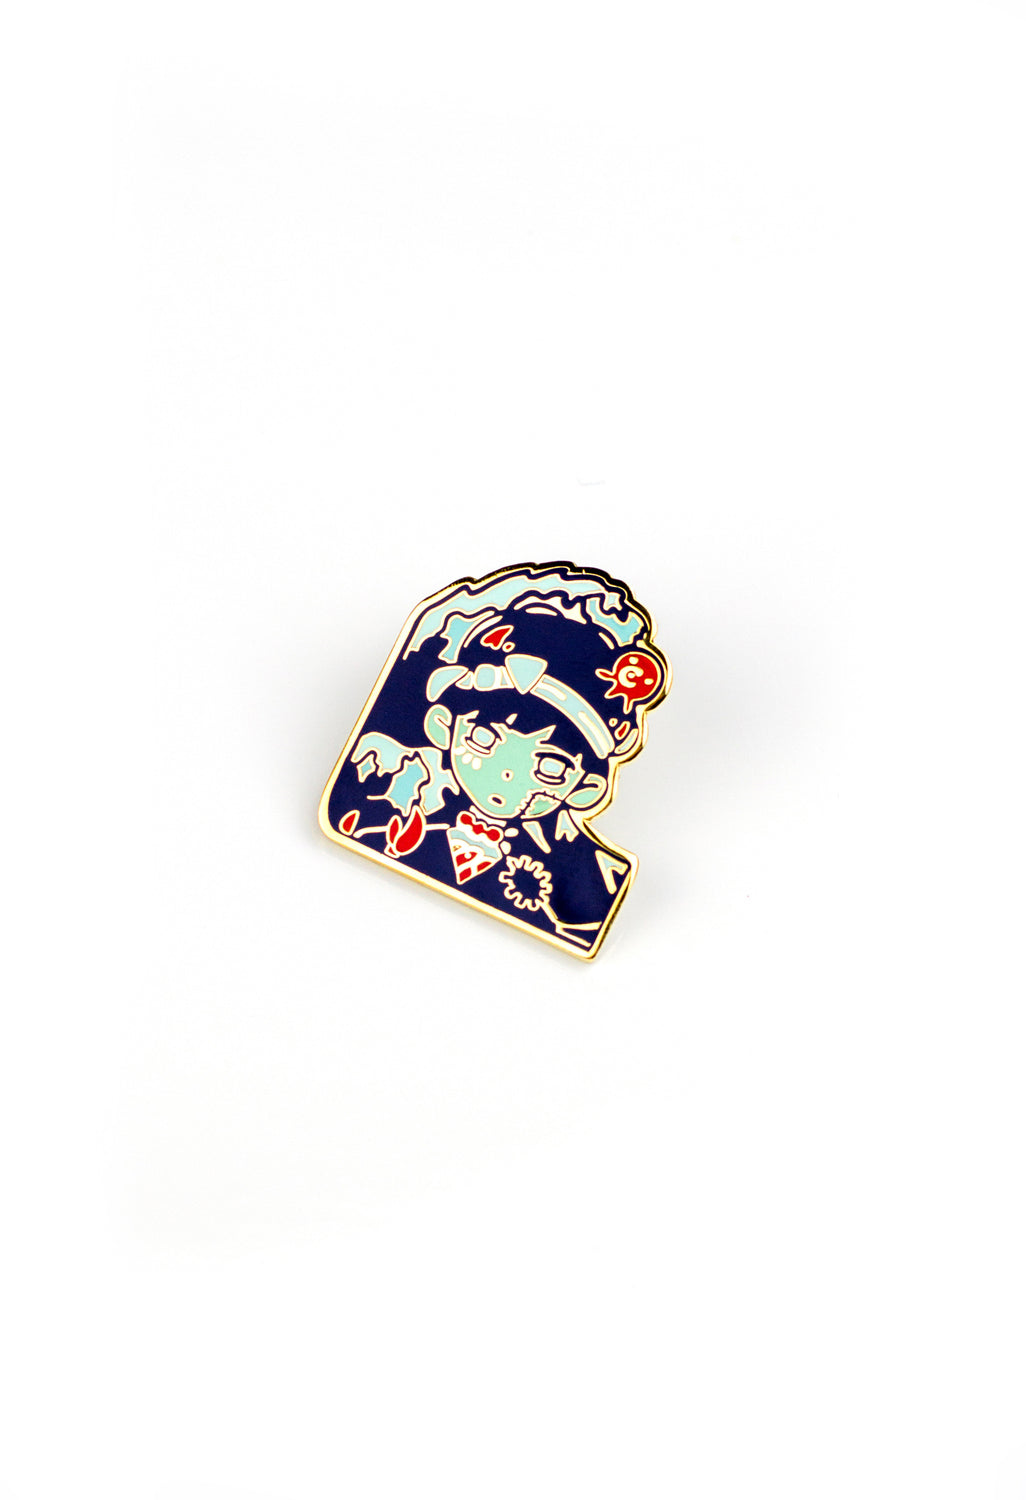 FISHBOY Pin